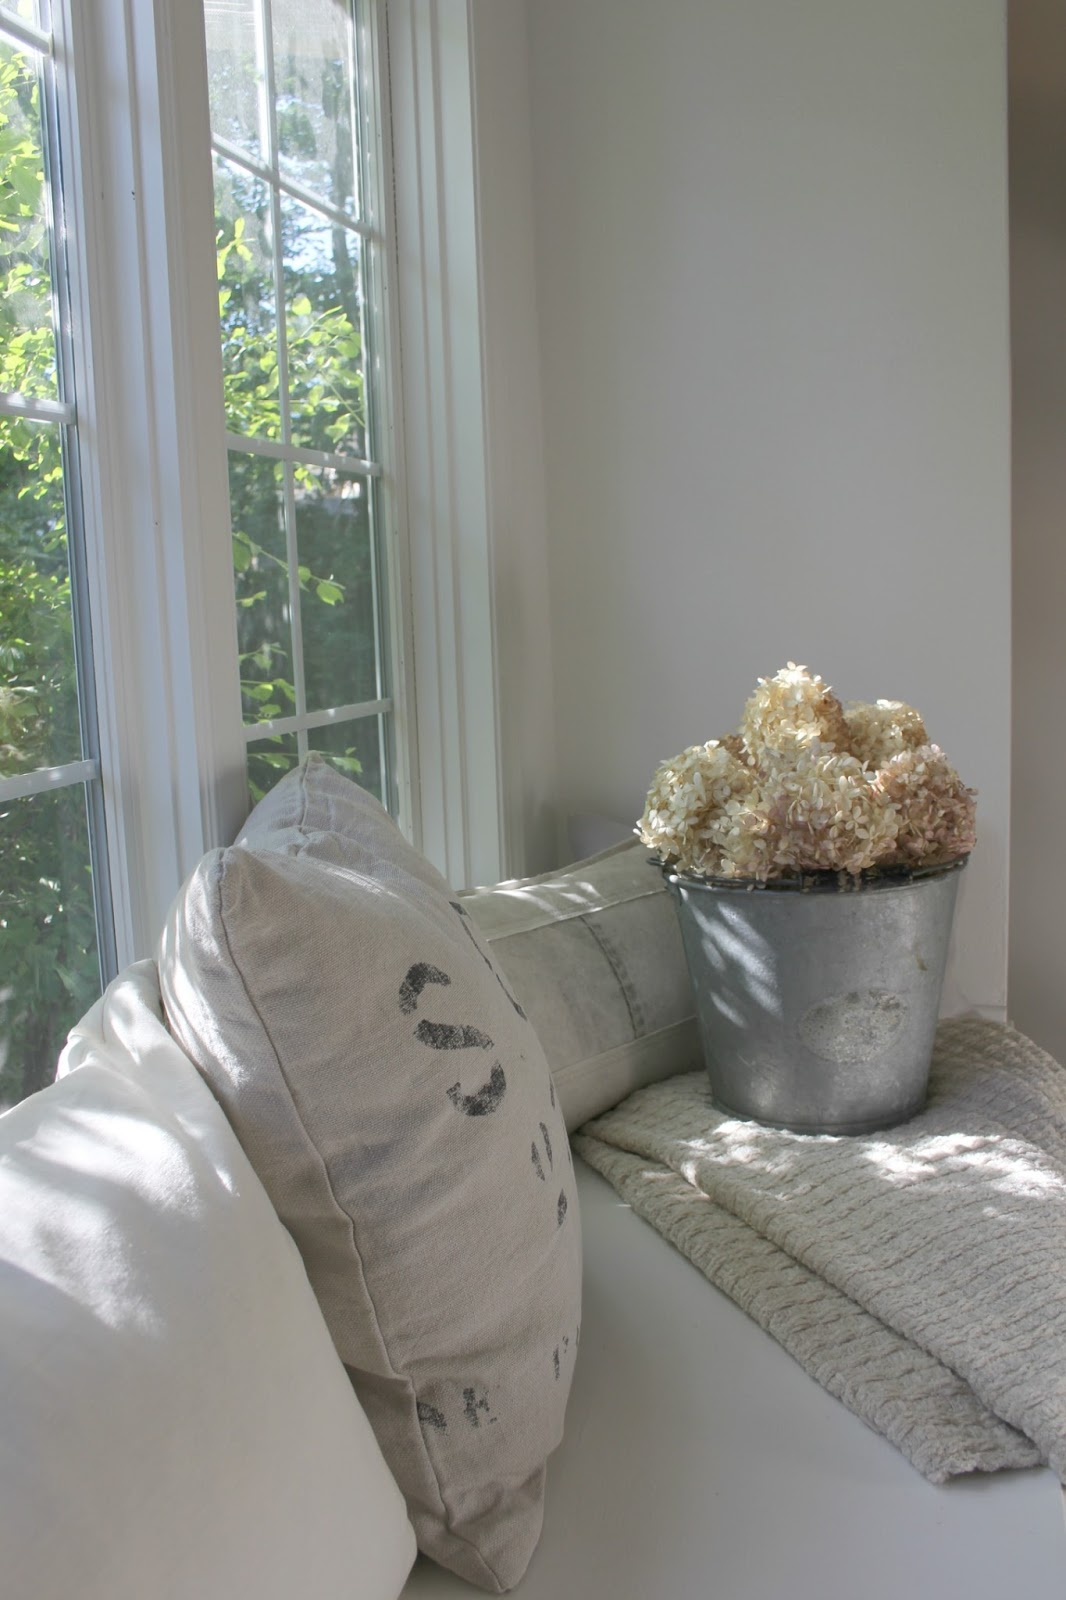 Window seat in breakfast room of kitchen. Belgian linen piillows and vintage galvanized pail holding dried hydrangea. Paint color is Bejamin Moore WHITE. #hellolovelystudio #benjaminmoorewhite #windowseat #breakfastroom #kitchen #belgianlinen #serenedecor